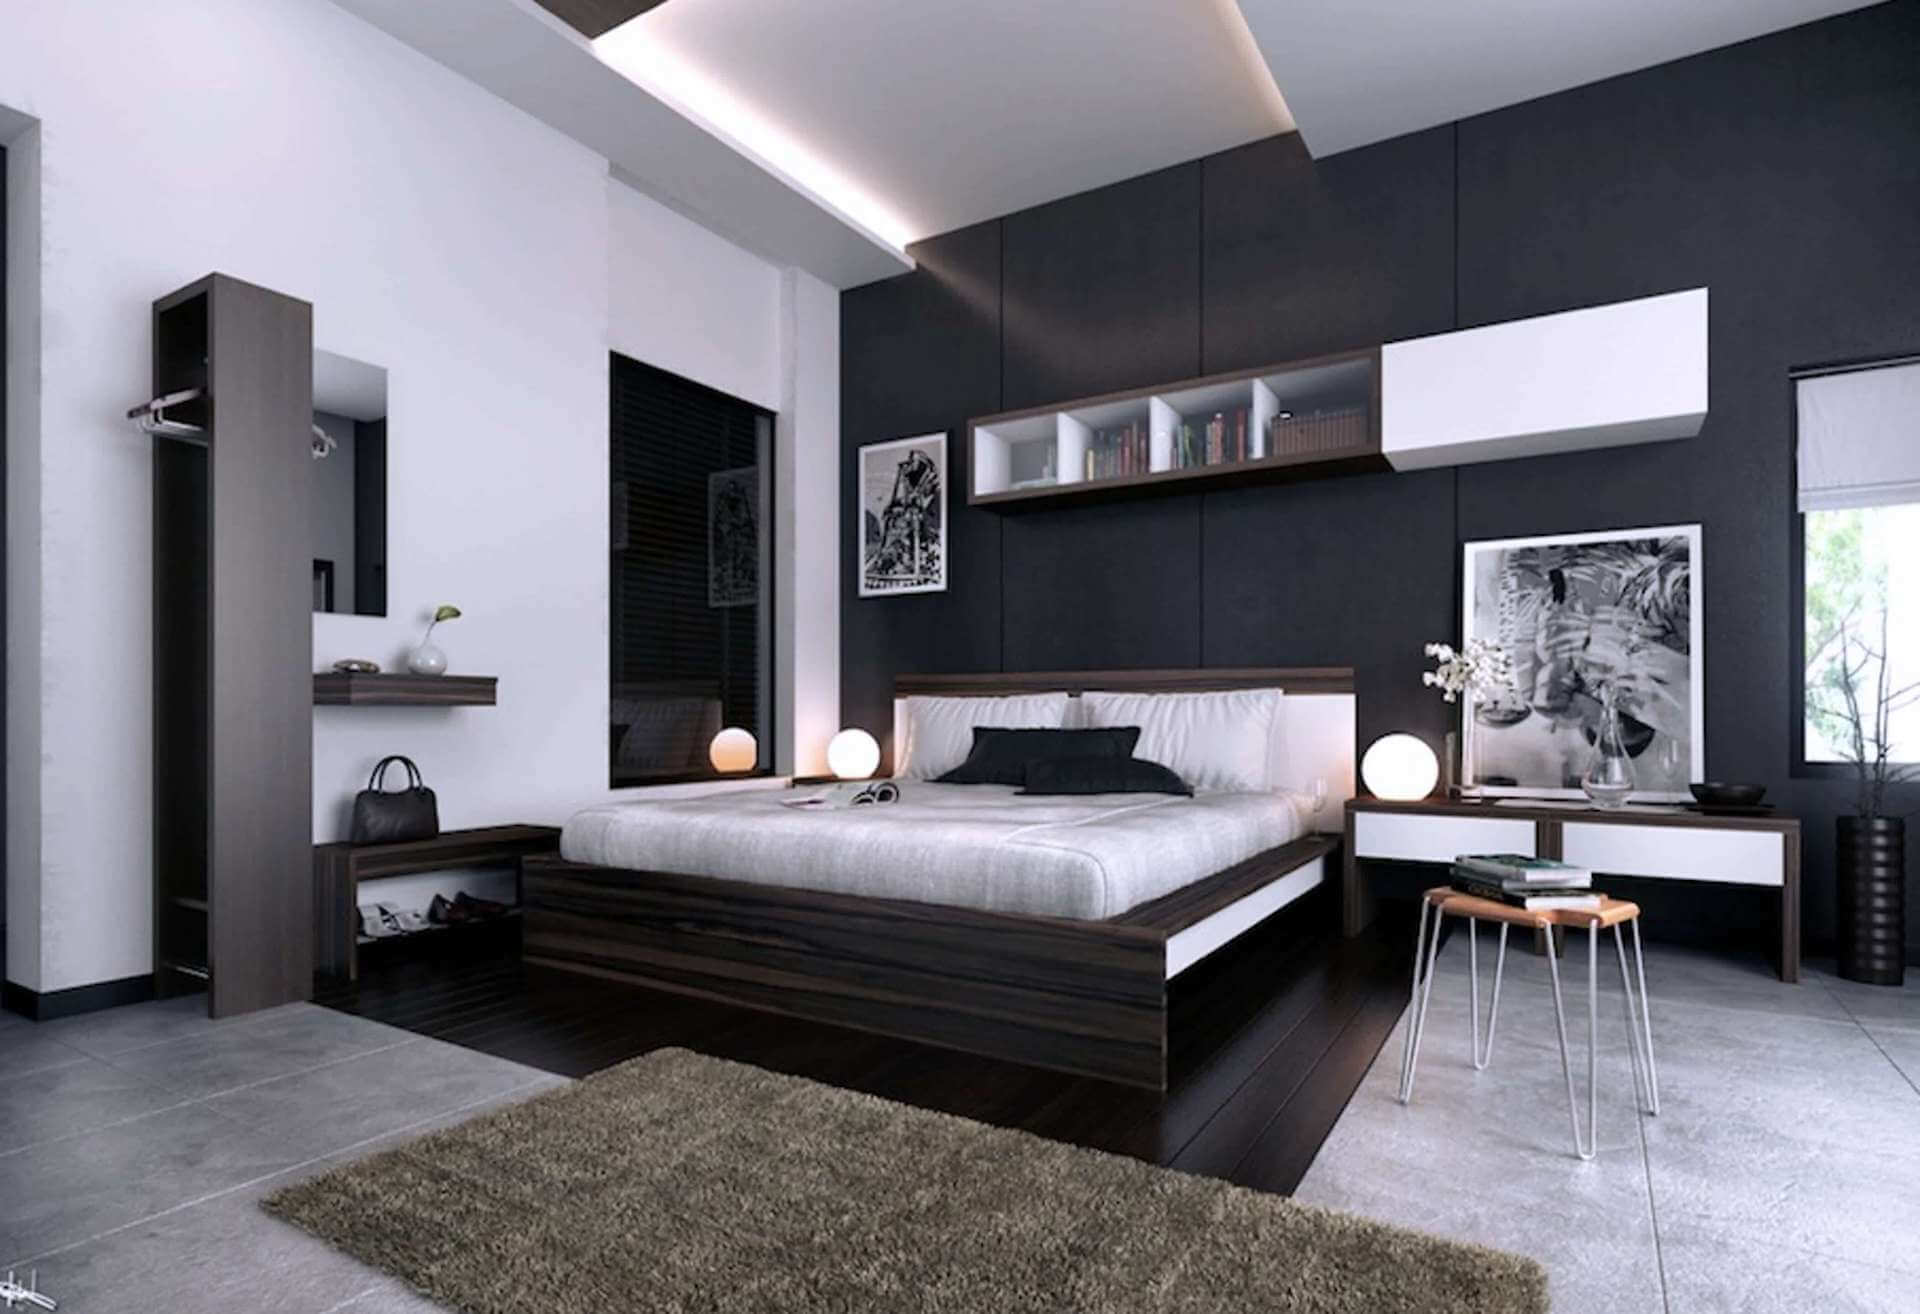 magnificent-bedroom-color-for-a-teenage-girl-black-and-white-and-purple-white-wall-white-teenage-bedroom-color-soft-brown-wall.jpg